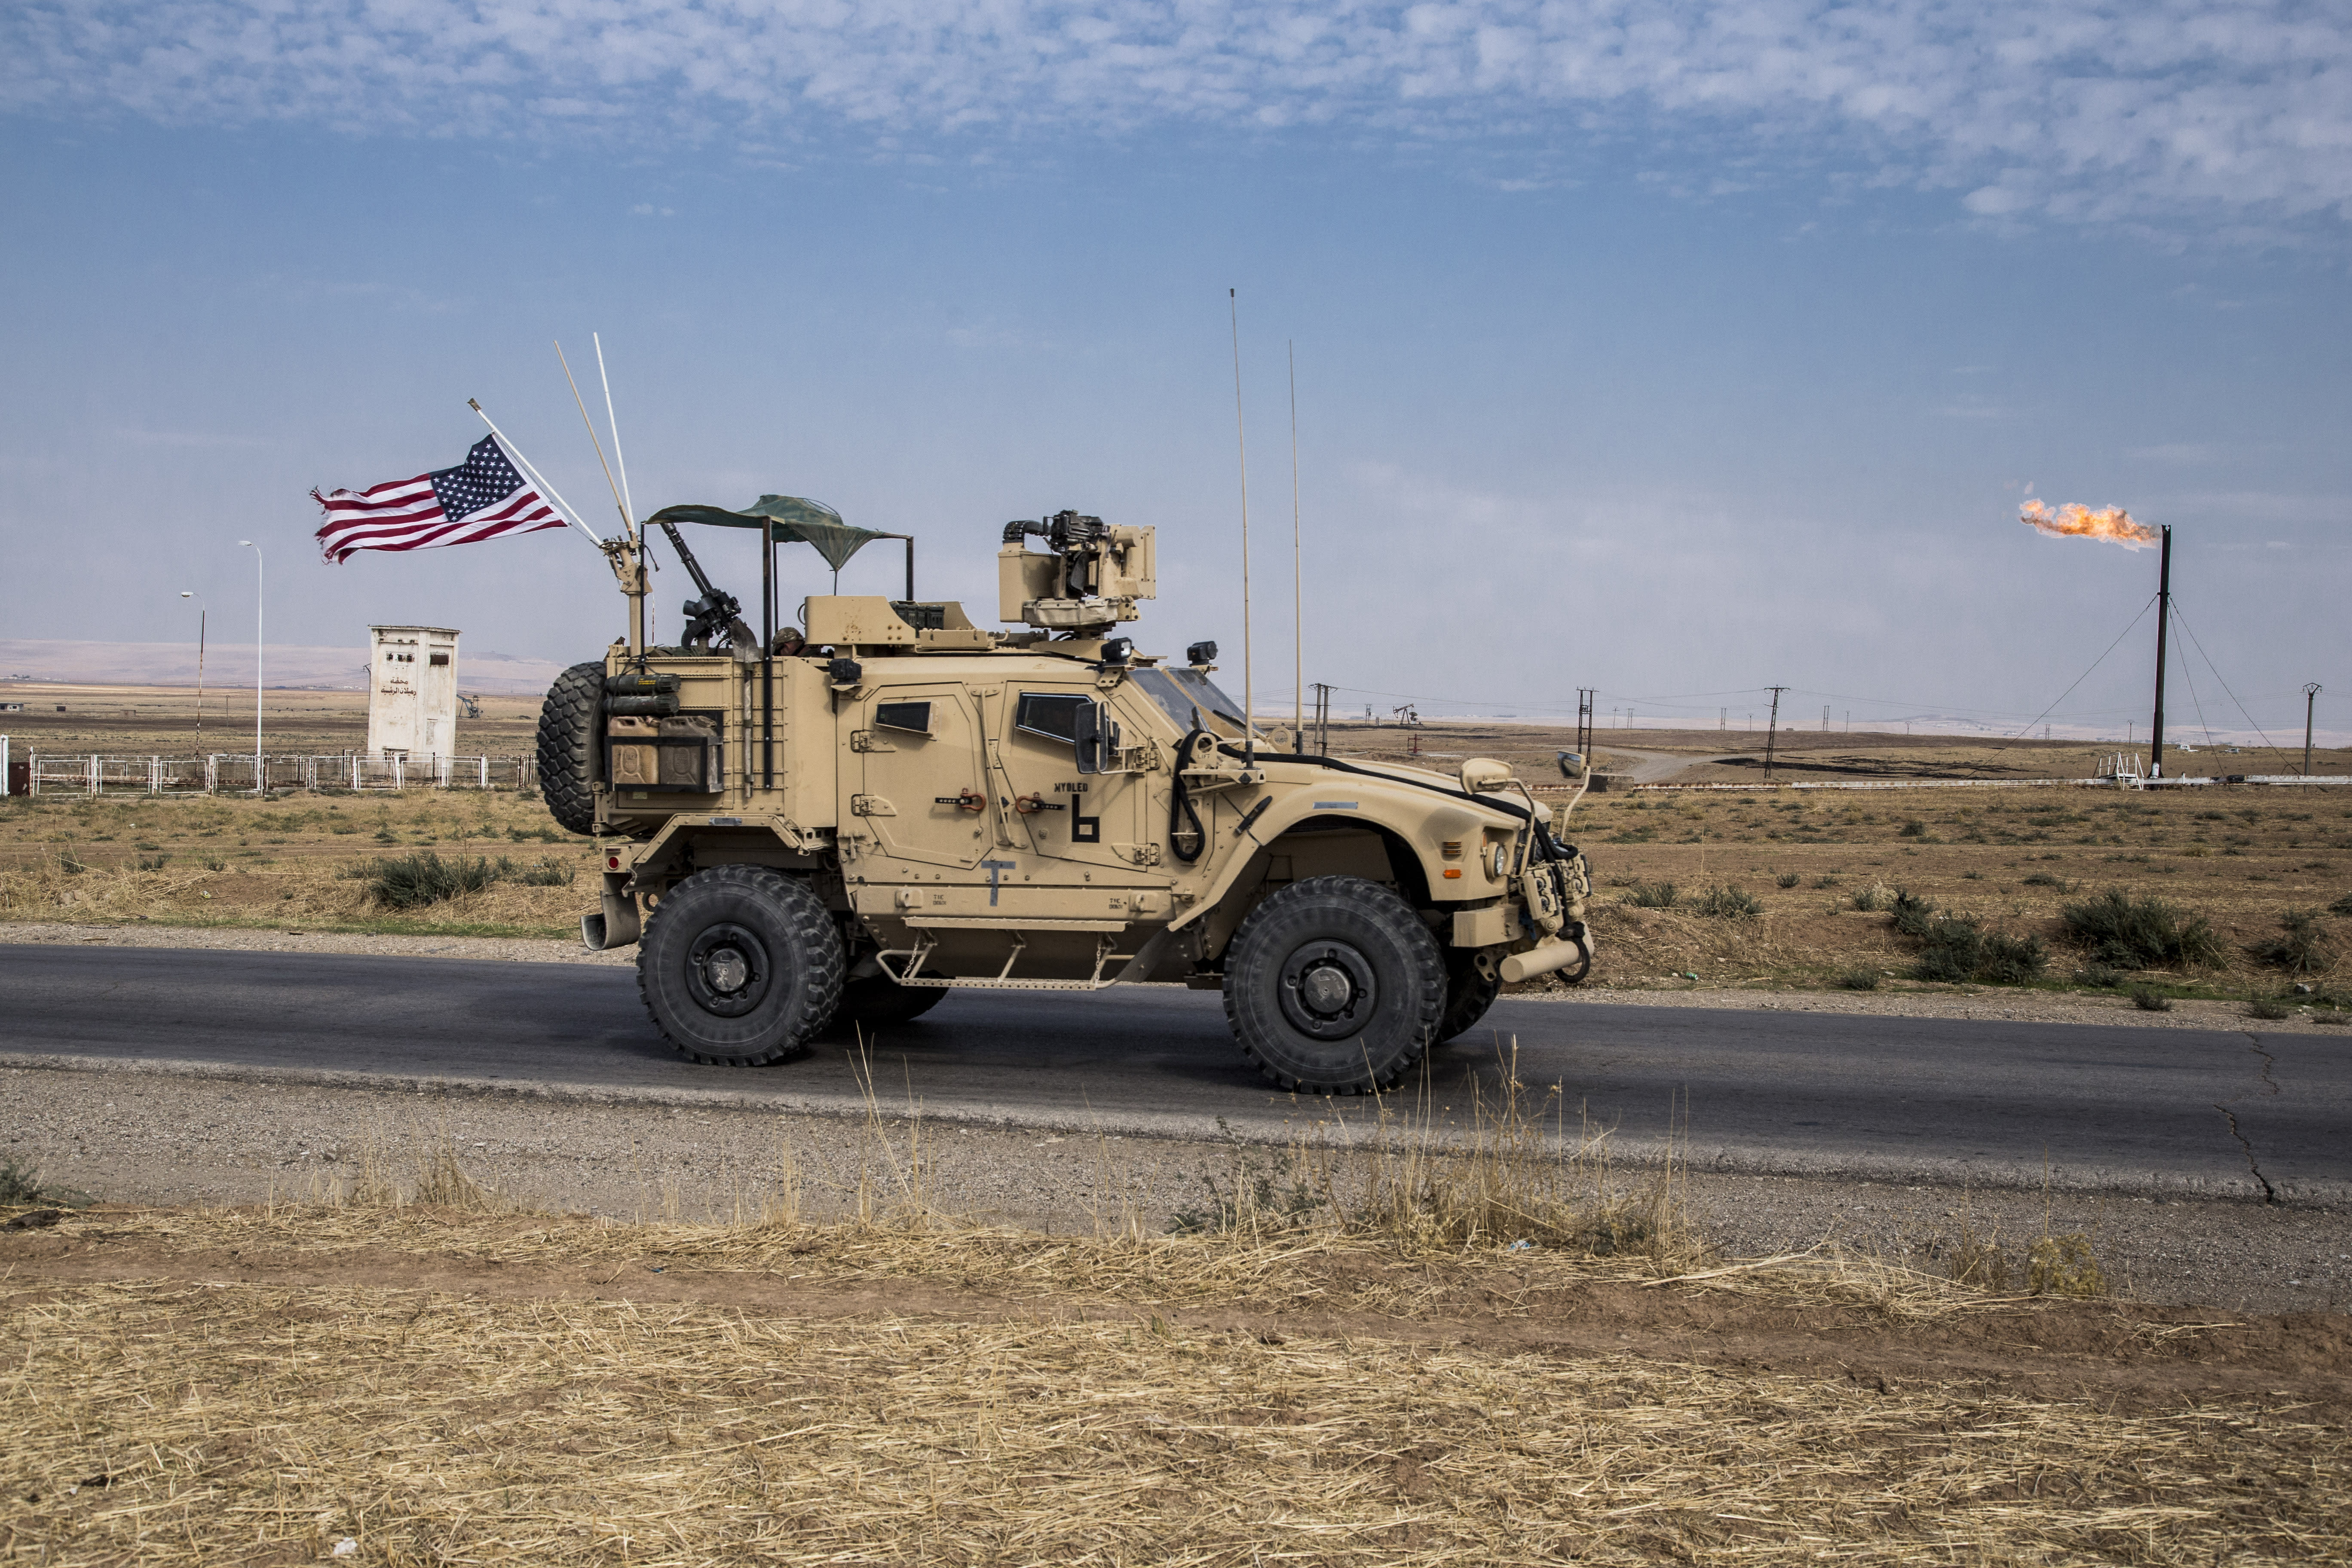 FILE - In this Monday, Oct. 28, 2019 file photo, U.S. forces patrol Syrian oil fields, in eastern Syria.President Donald Trump's decision to dispatch new U.S. forces to eastern Syria to secure oil fields is being criticized by some experts as ill-defined and ambiguous. But the residents of the area, one of the country's most remote and richest regions, hope the U.S. focus on eastern Syria would bring an economic boon and eliminate what remains of the Islamic State group. (AP Photo/Baderkhan Ahmad, File)